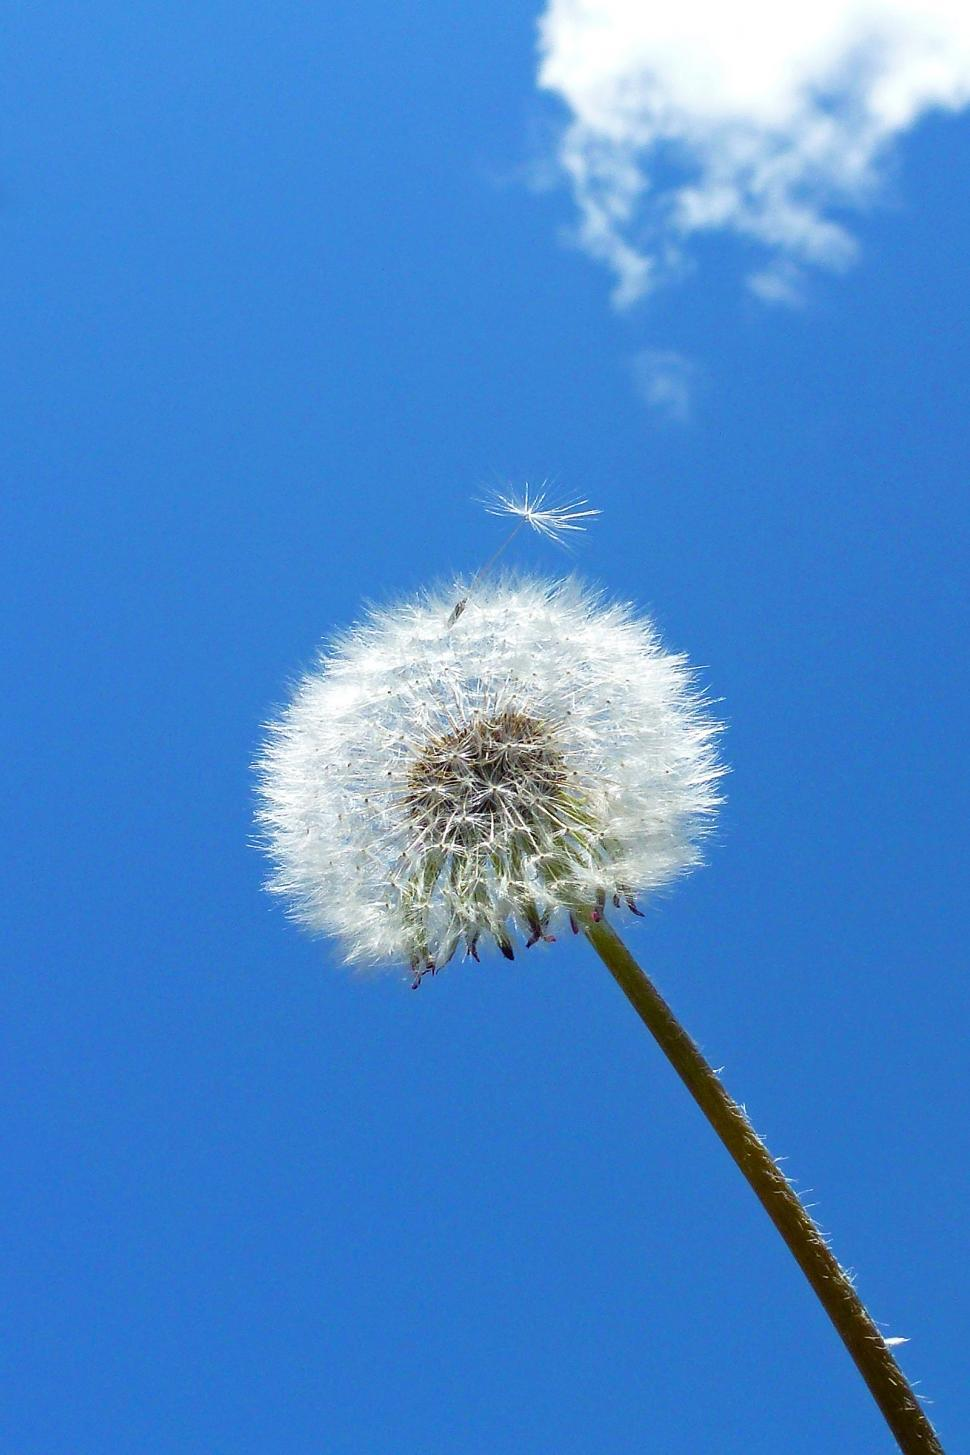 Download Free Stock HD Photo of Dandelion Seeds Agaist Blue Sky Online